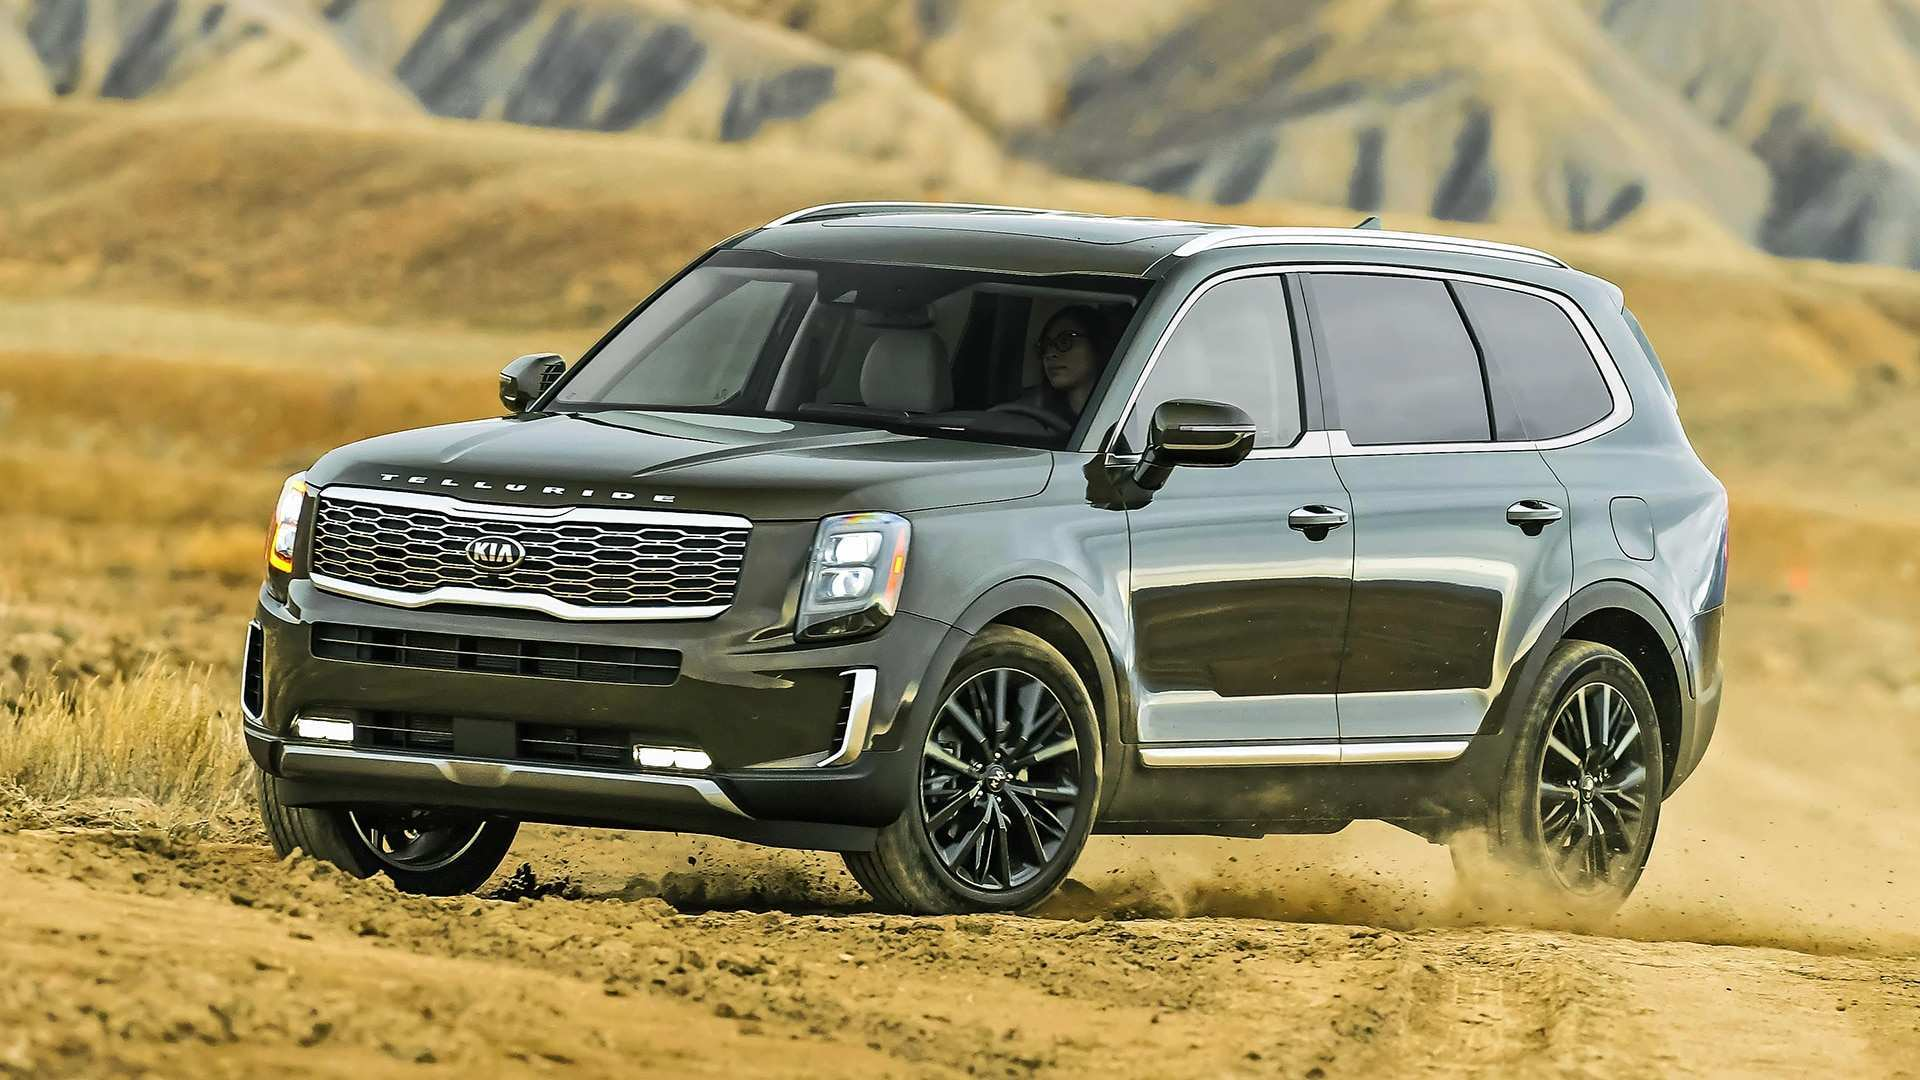 11 All New 2020 Kia Telluride Review Performance and New Engine for 2020 Kia Telluride Review